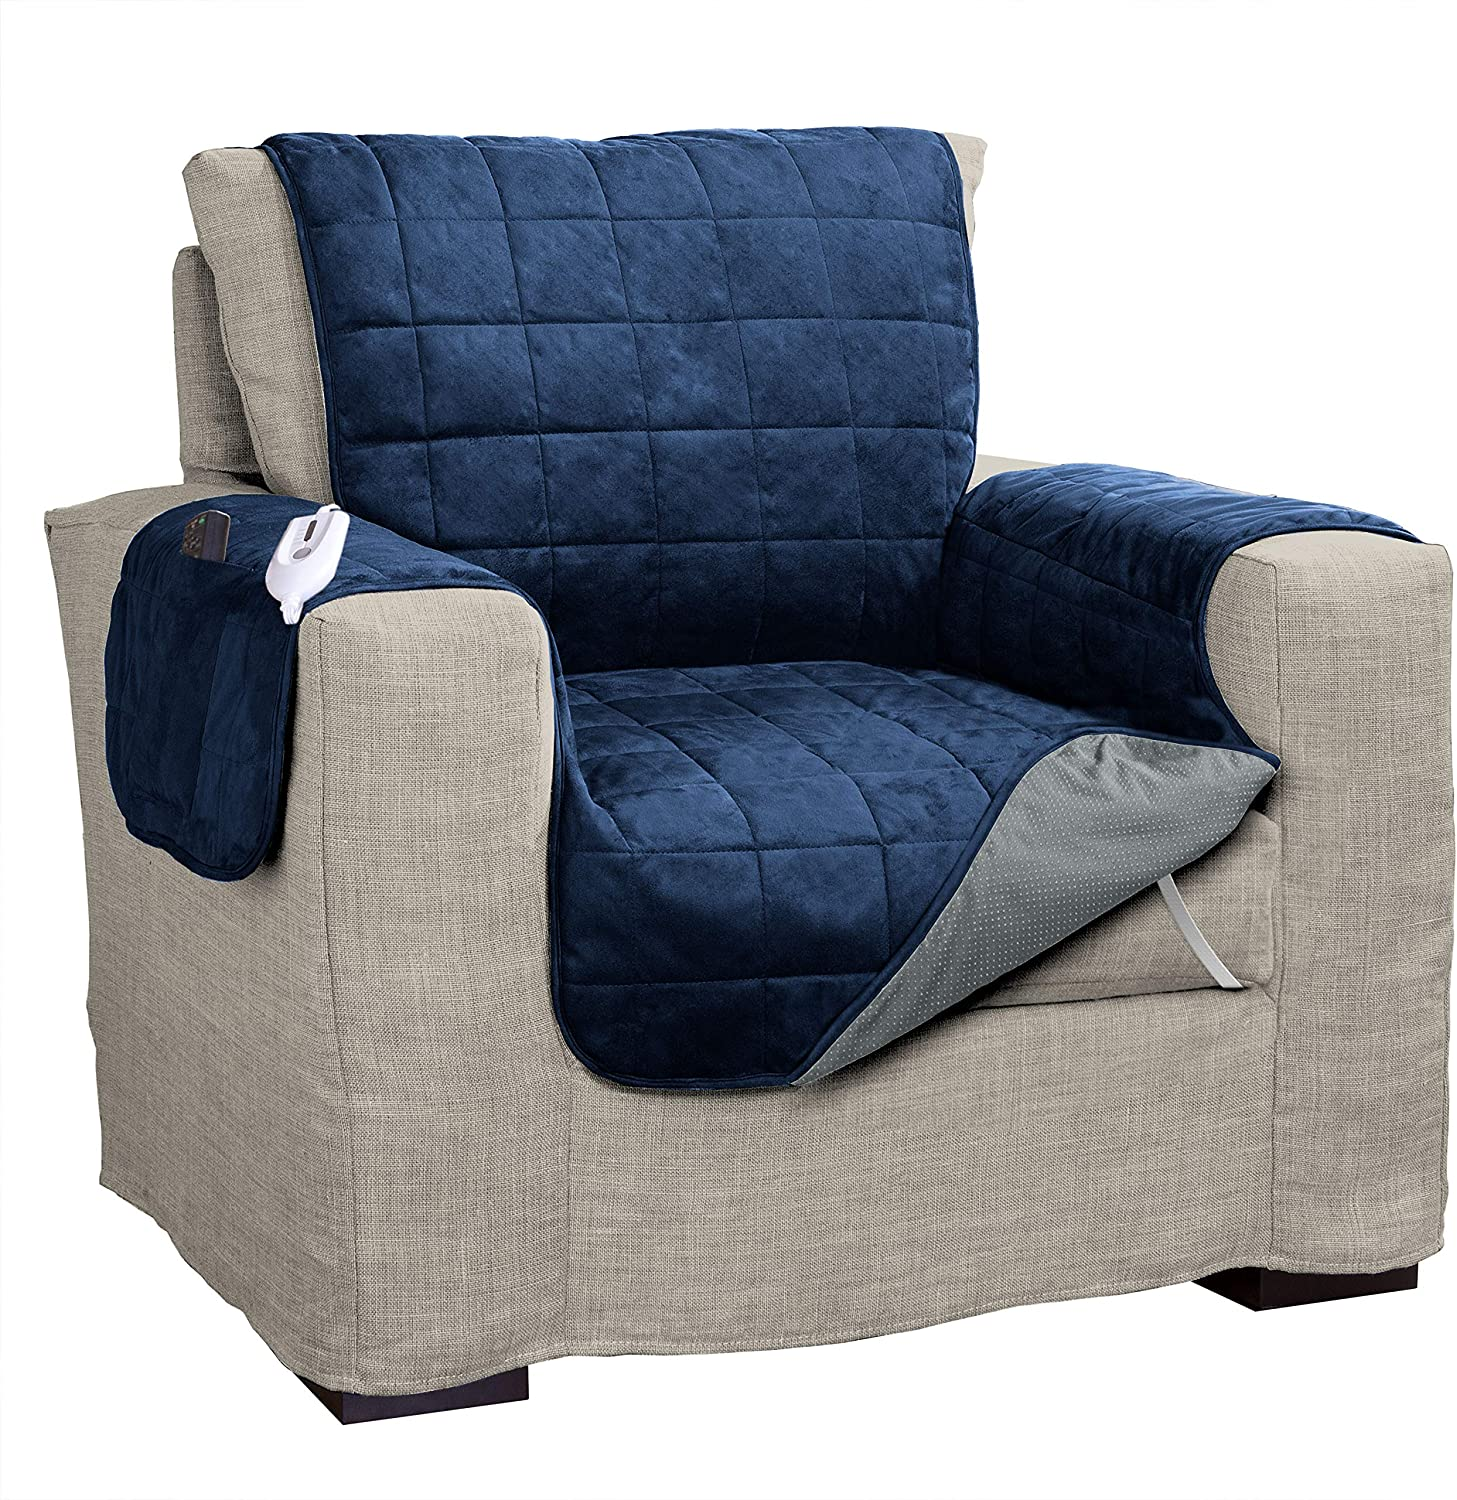 Serta | Quilted Electric Warming Furniture Protector Pet Safe & Durable Easy Care Microsuede Fabric, Chair, Navy